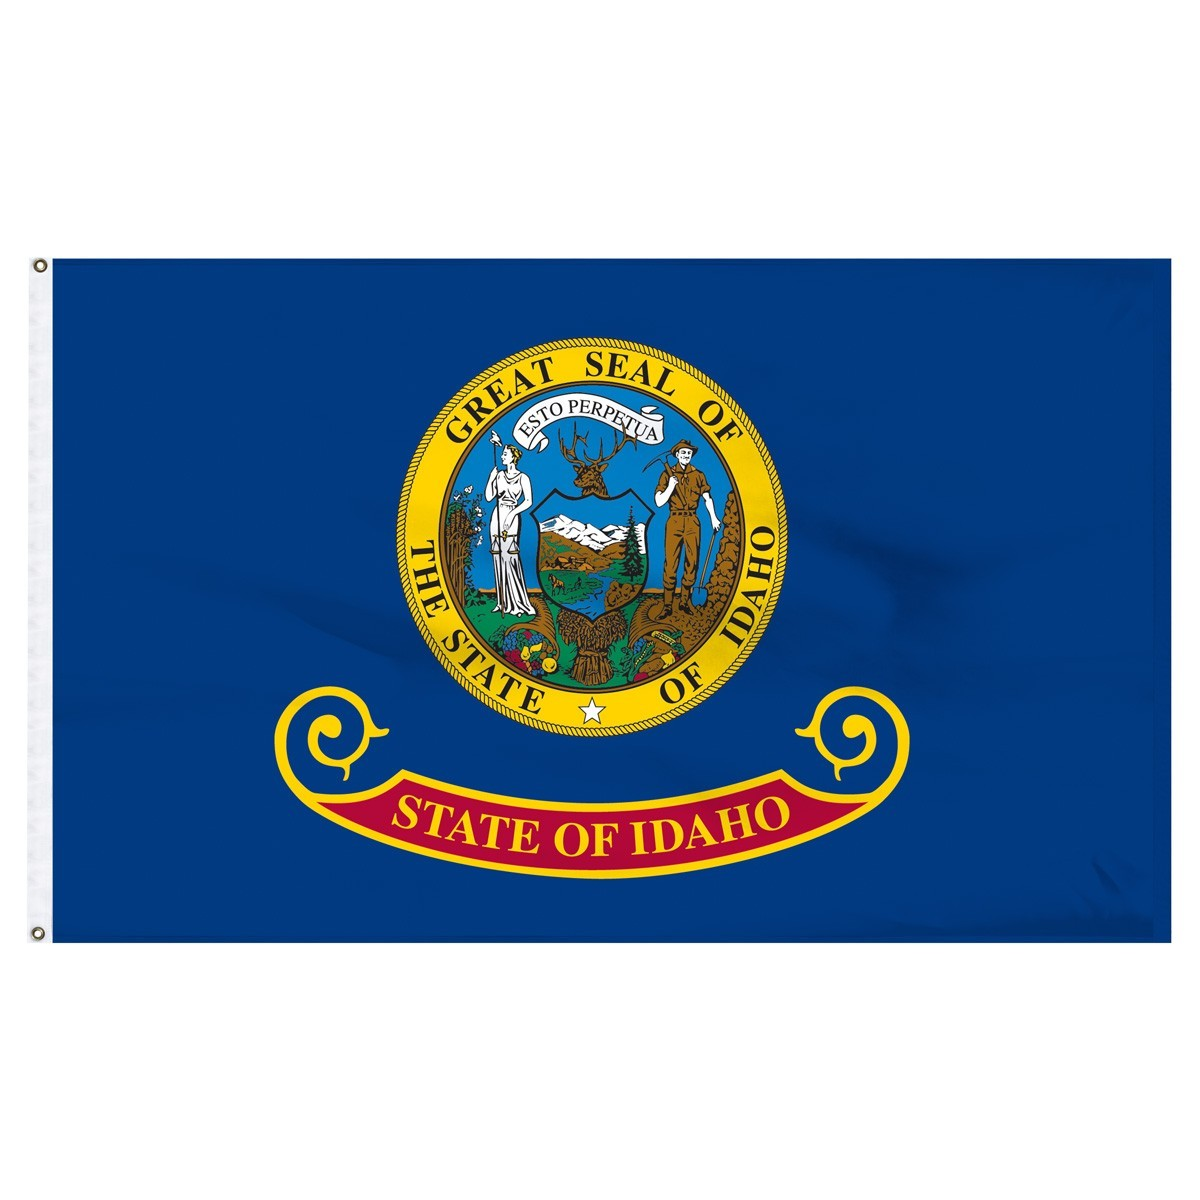 Idaho Flags For Sale by 1-800 Flags 1800 Flags